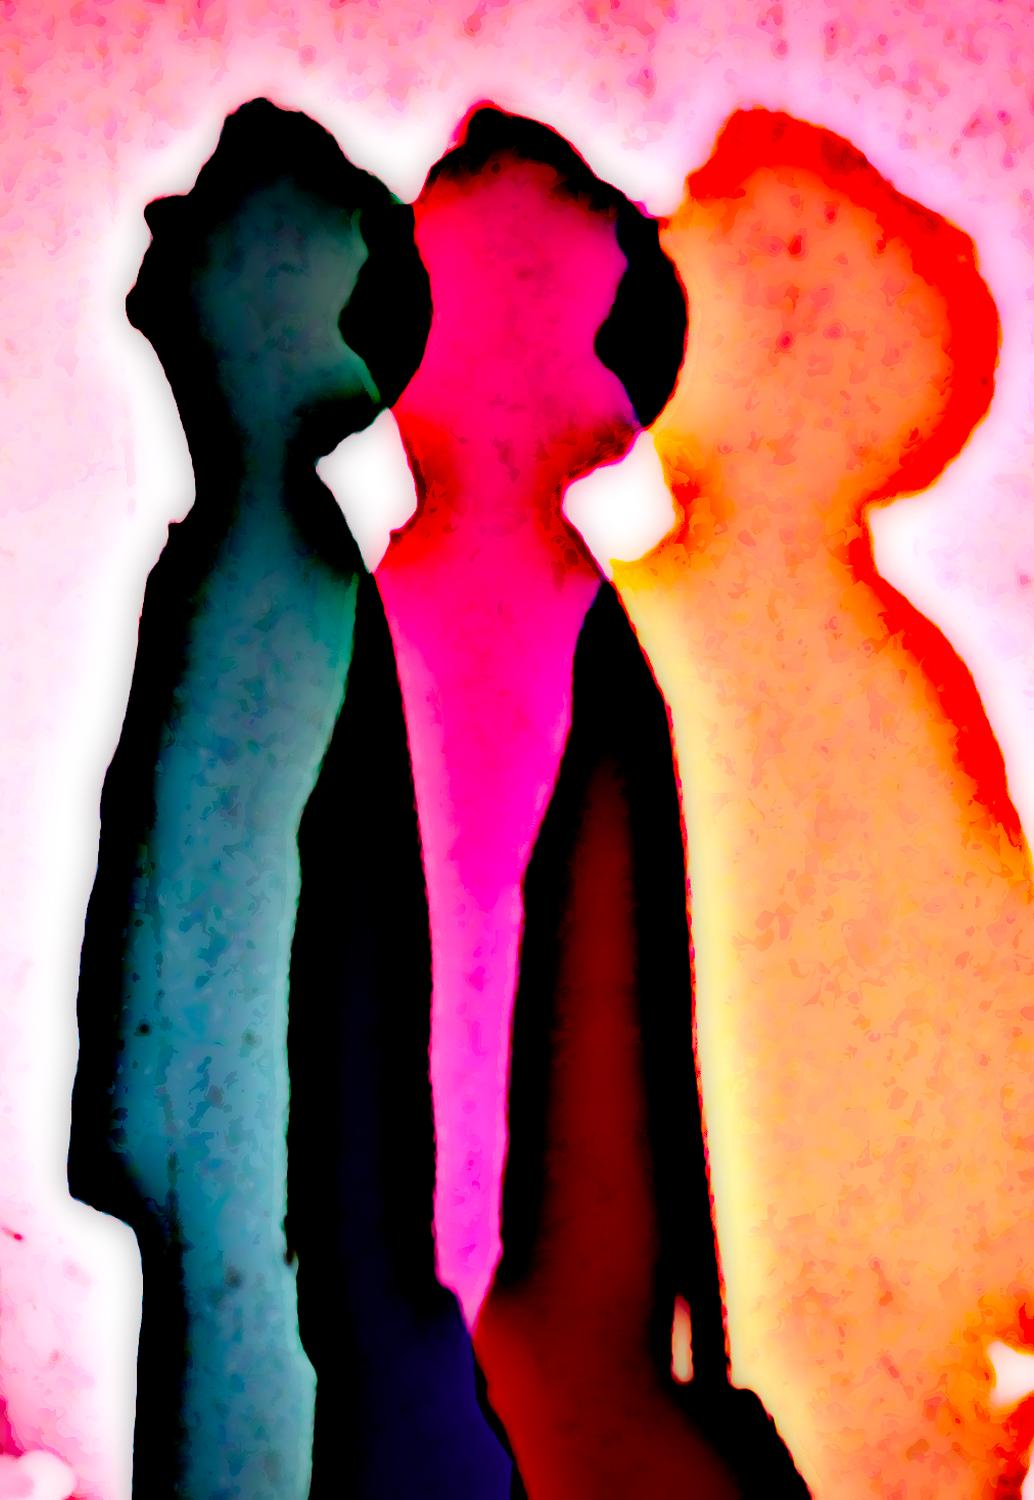 the Hobbitt, artist's muse at the Exploratorium - three colored shadows - The three faces of the Hobbitt - Techno-Impressionist Museum - Techno-Impressionism - art - beautiful - photo photography picture - by Tony Karp